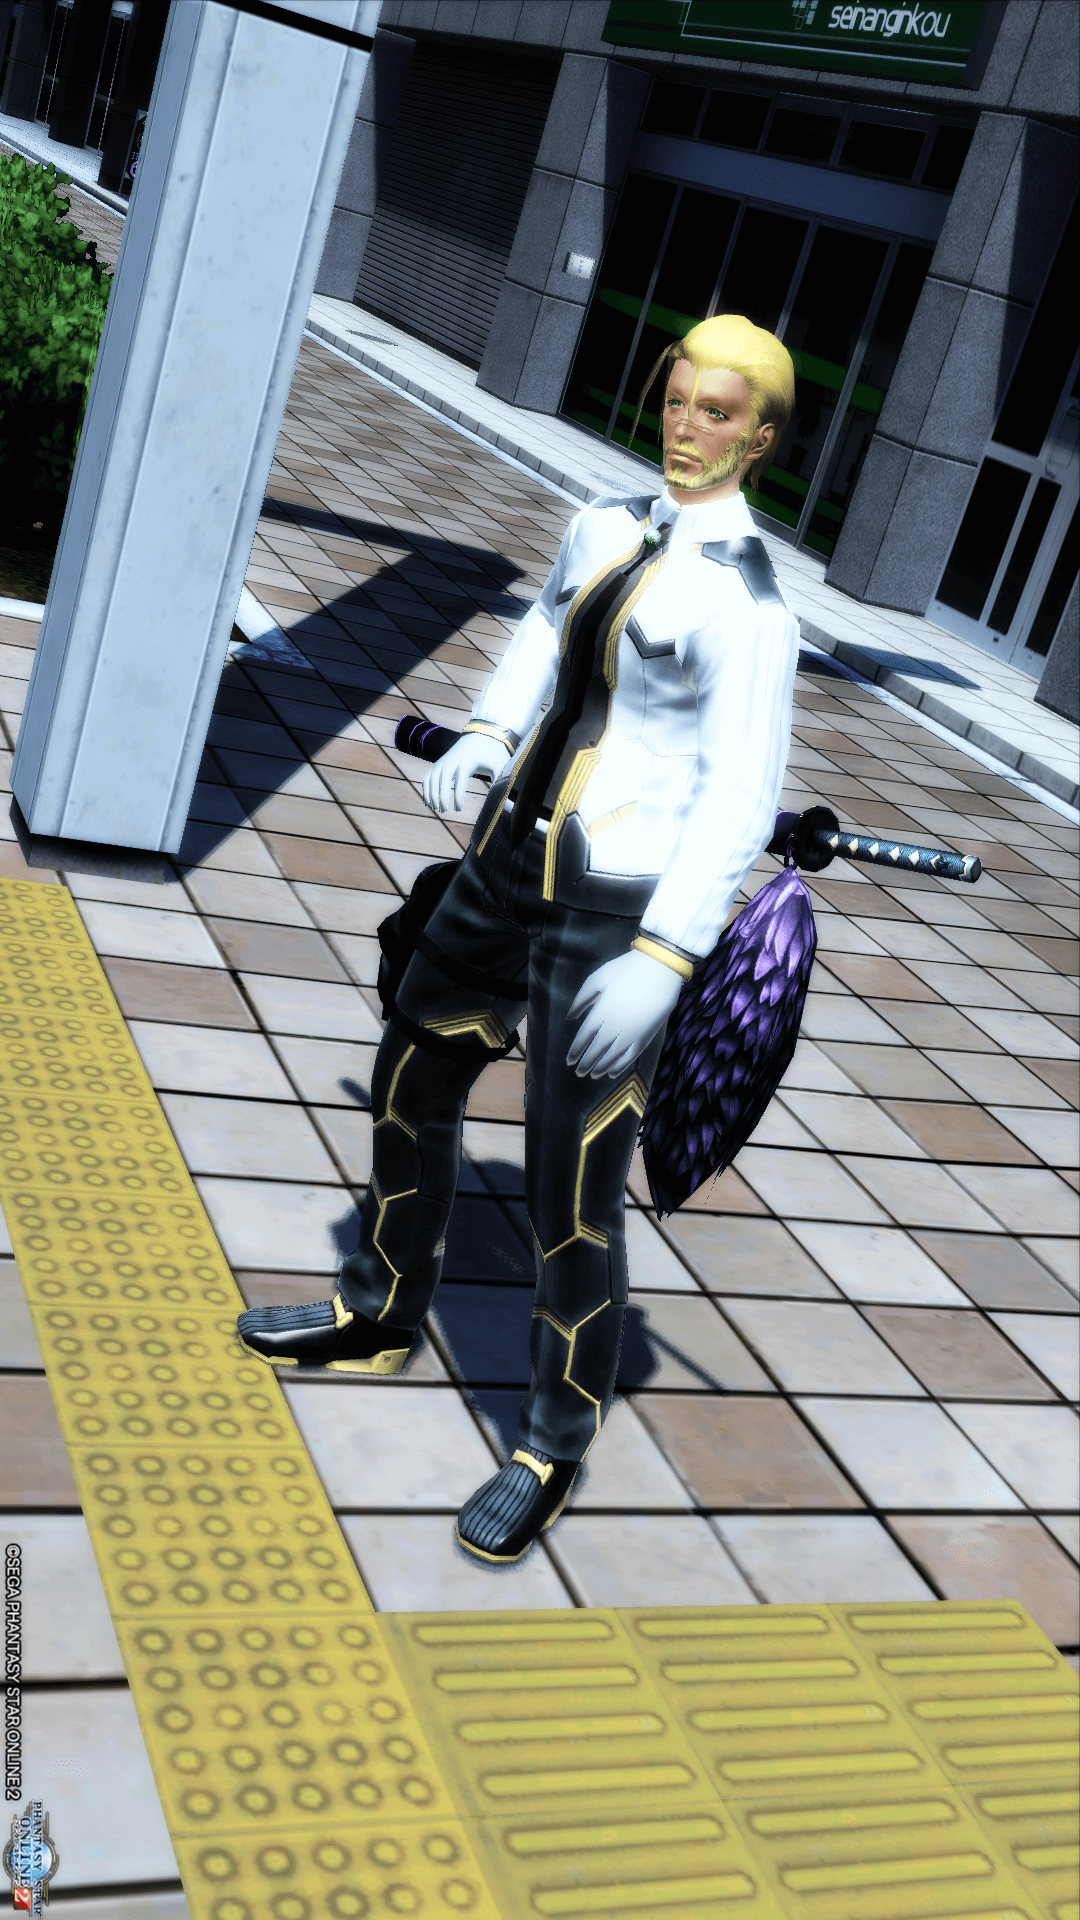 pso20160215_185428_009.png